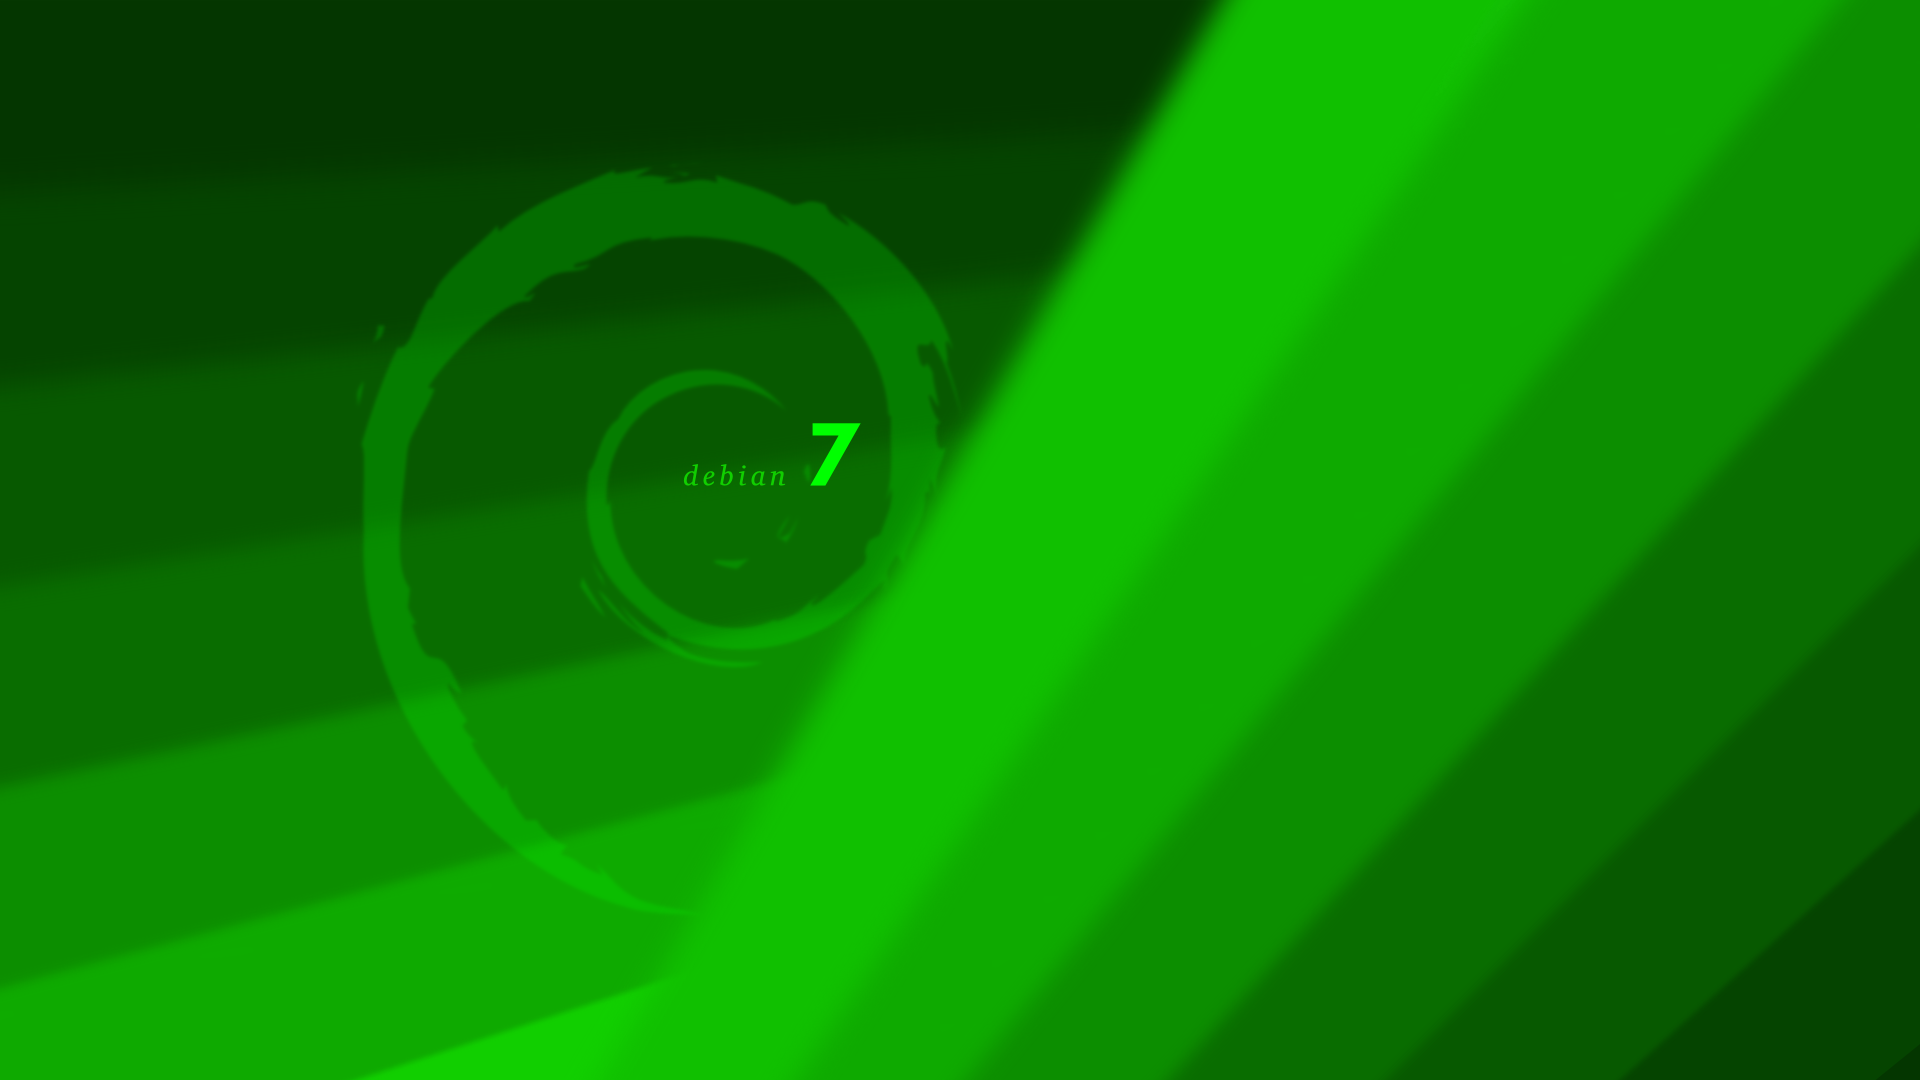 green7-1920x1080.png